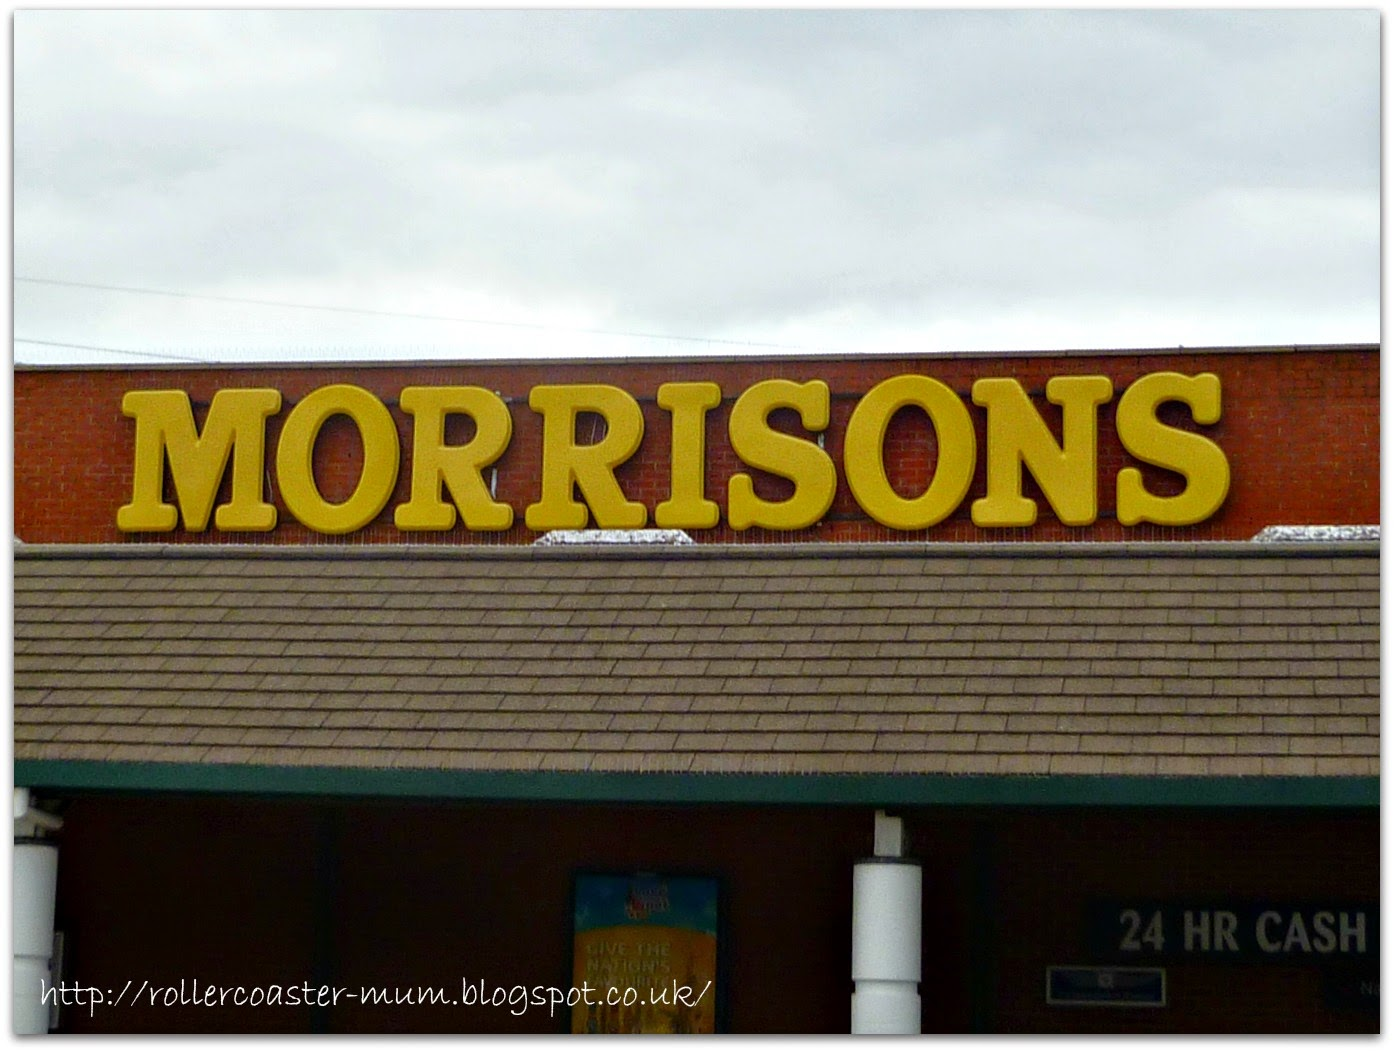 Morrisons sign #MorrisonsMum bank holiday shop